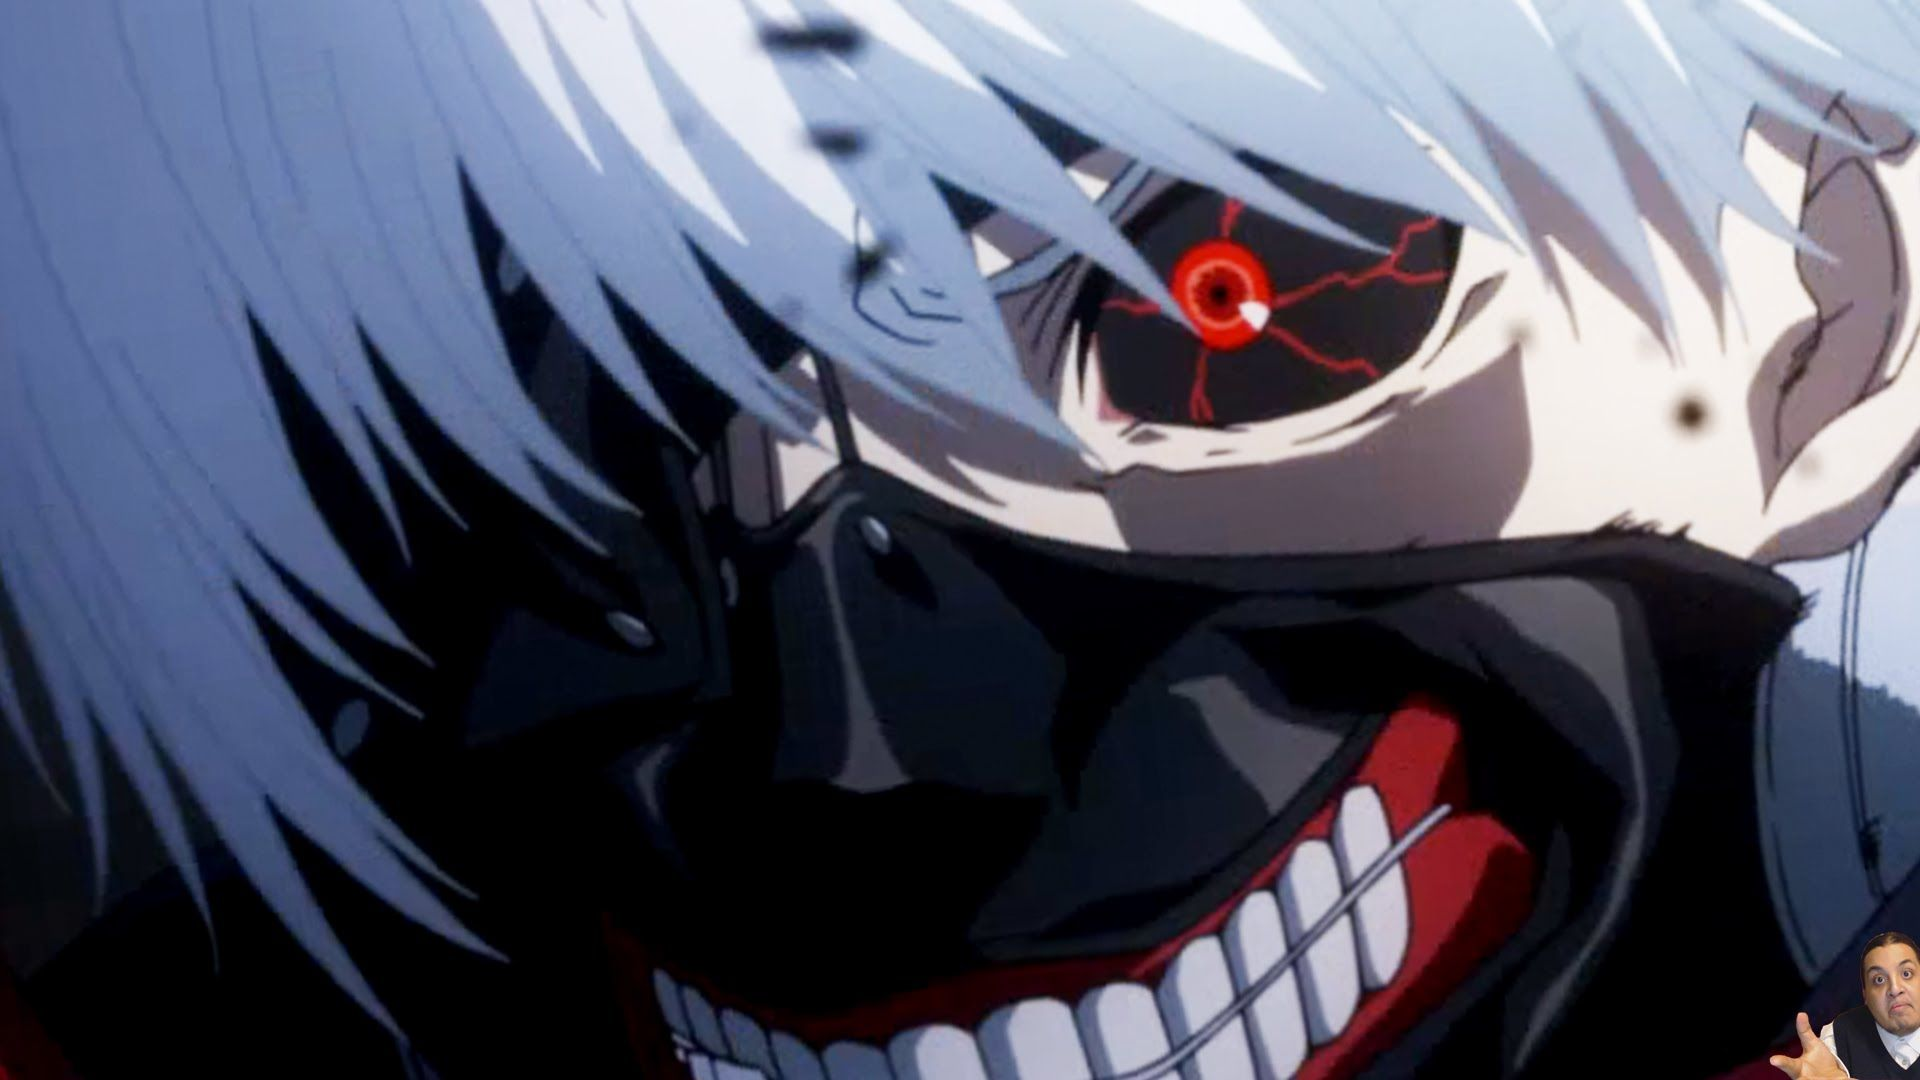 Tokyo Ghoul season three is confirmed via press release